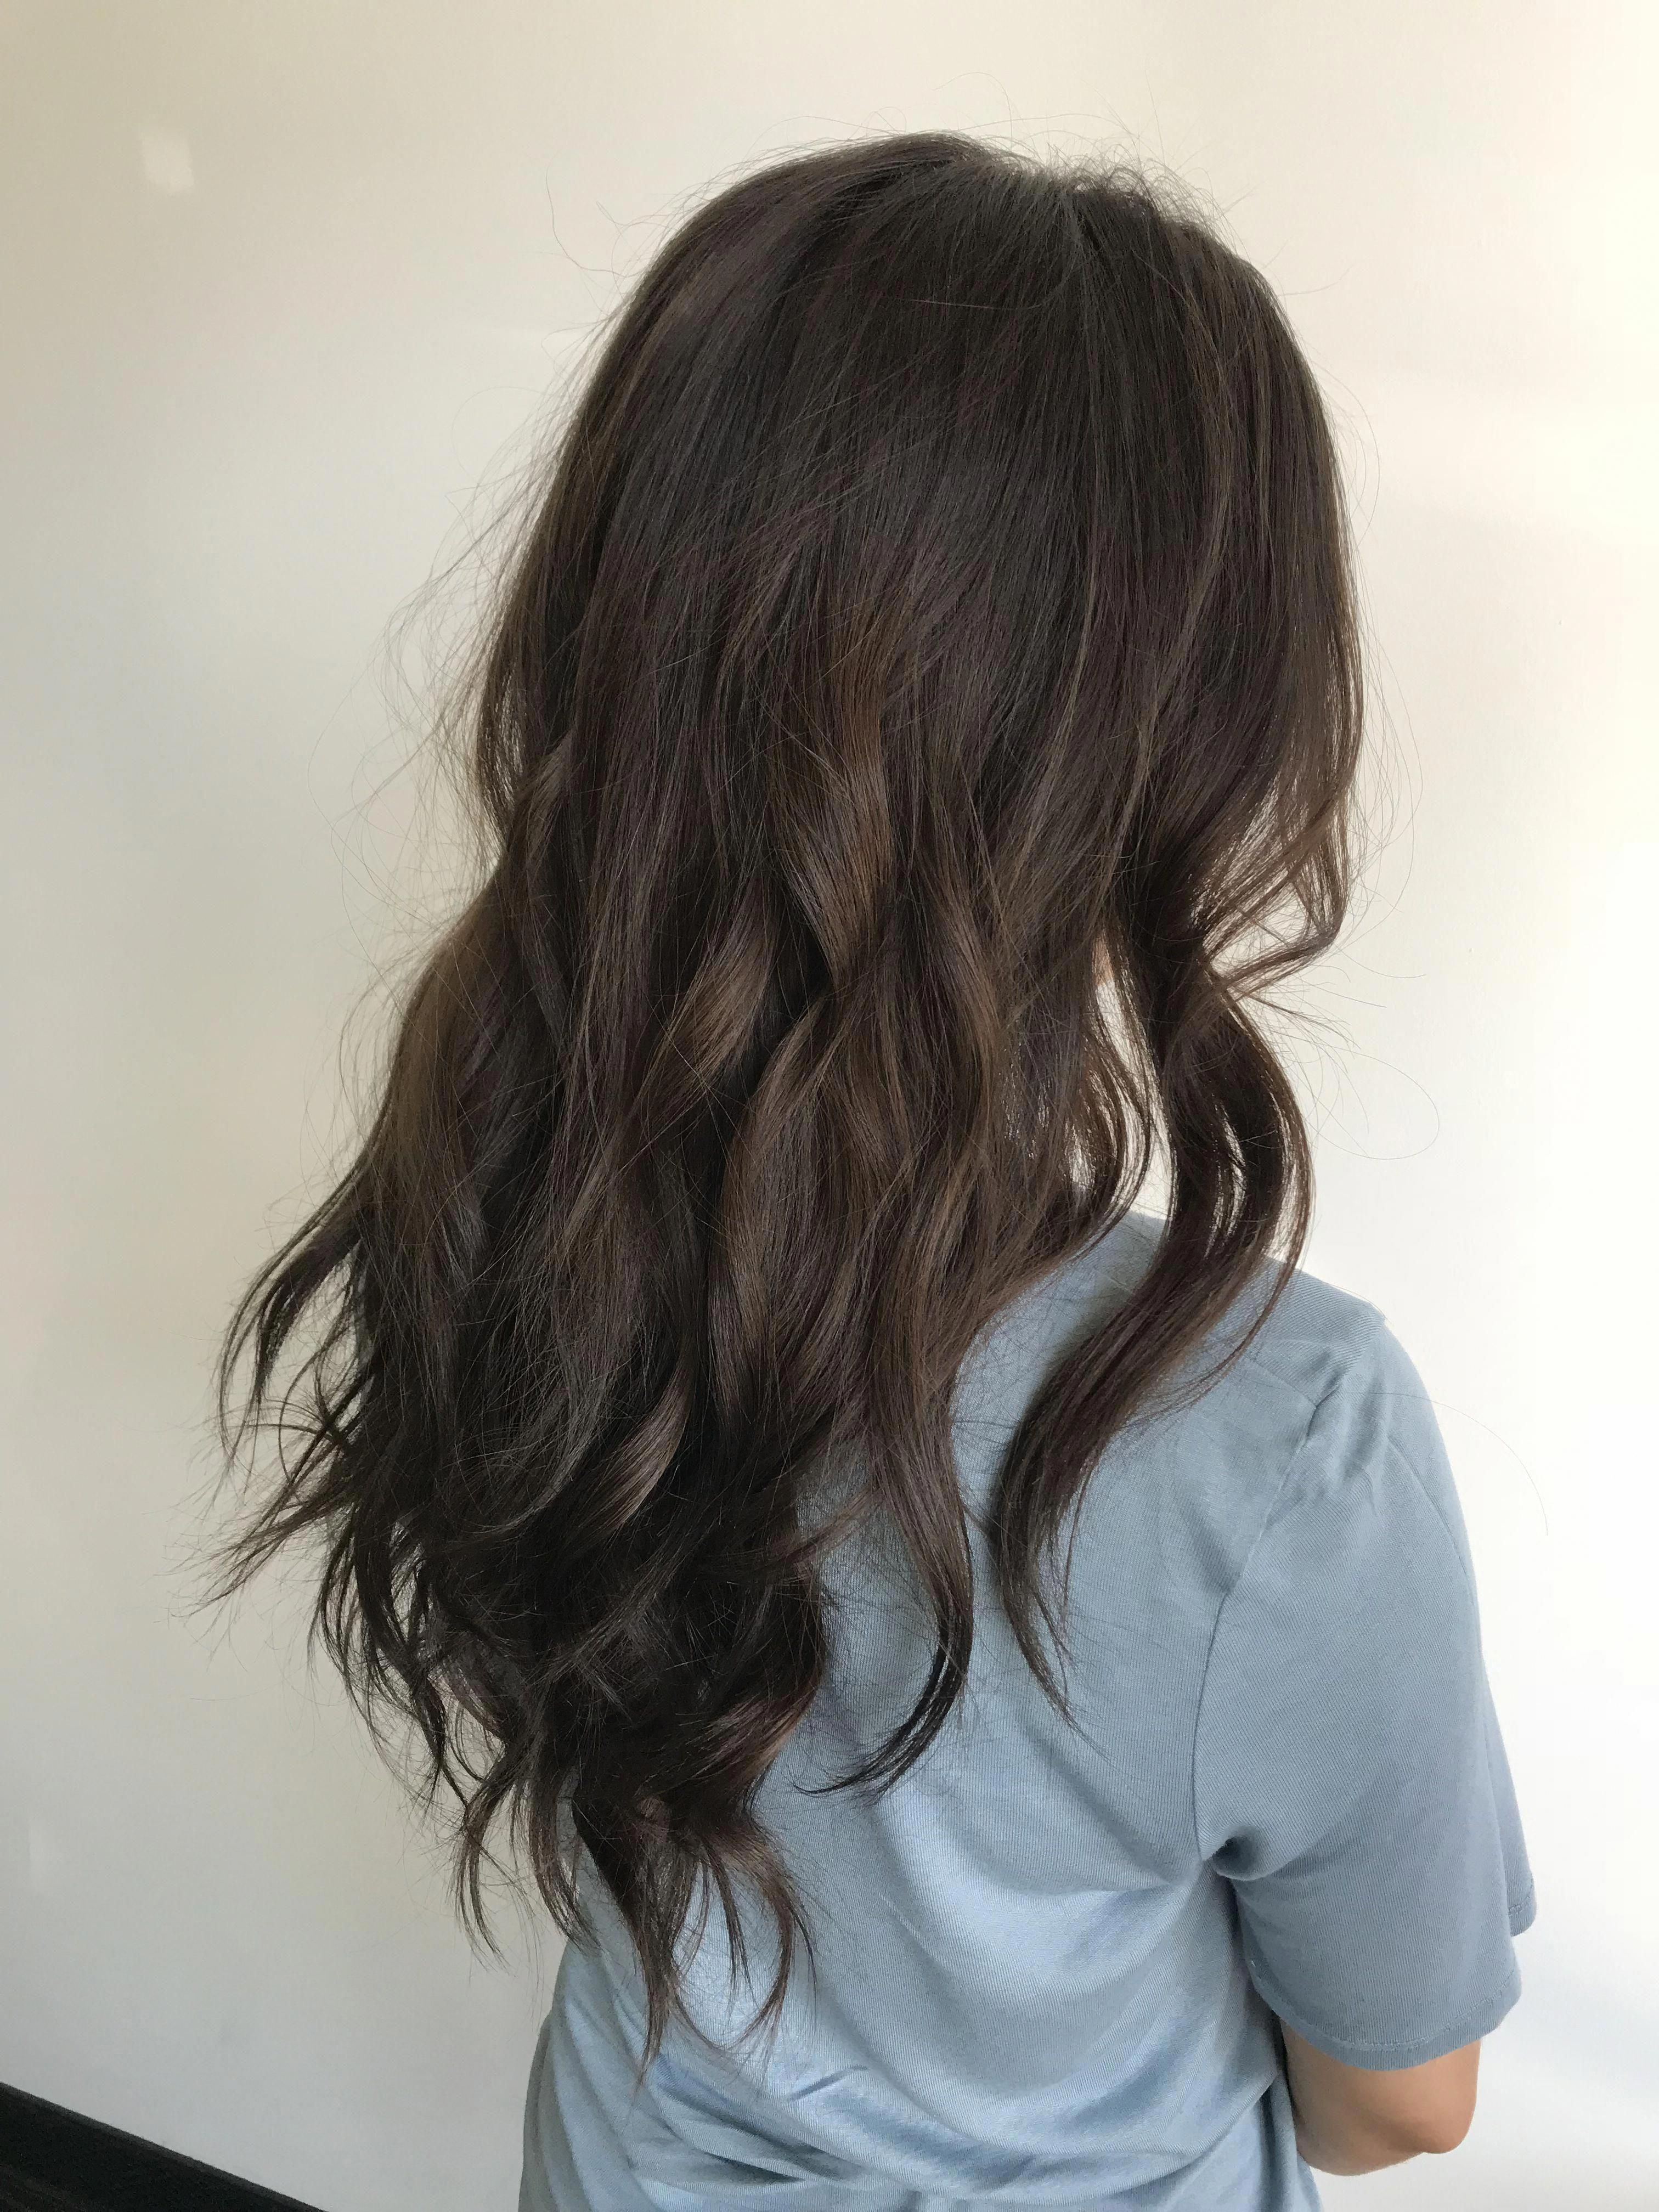 789 Likes 17 Comments Ky Color Ista Kycolor On Instagram Before After Nobase Lowmaintenance As Brown Hair Balayage Hair Color Asian Asian Hair